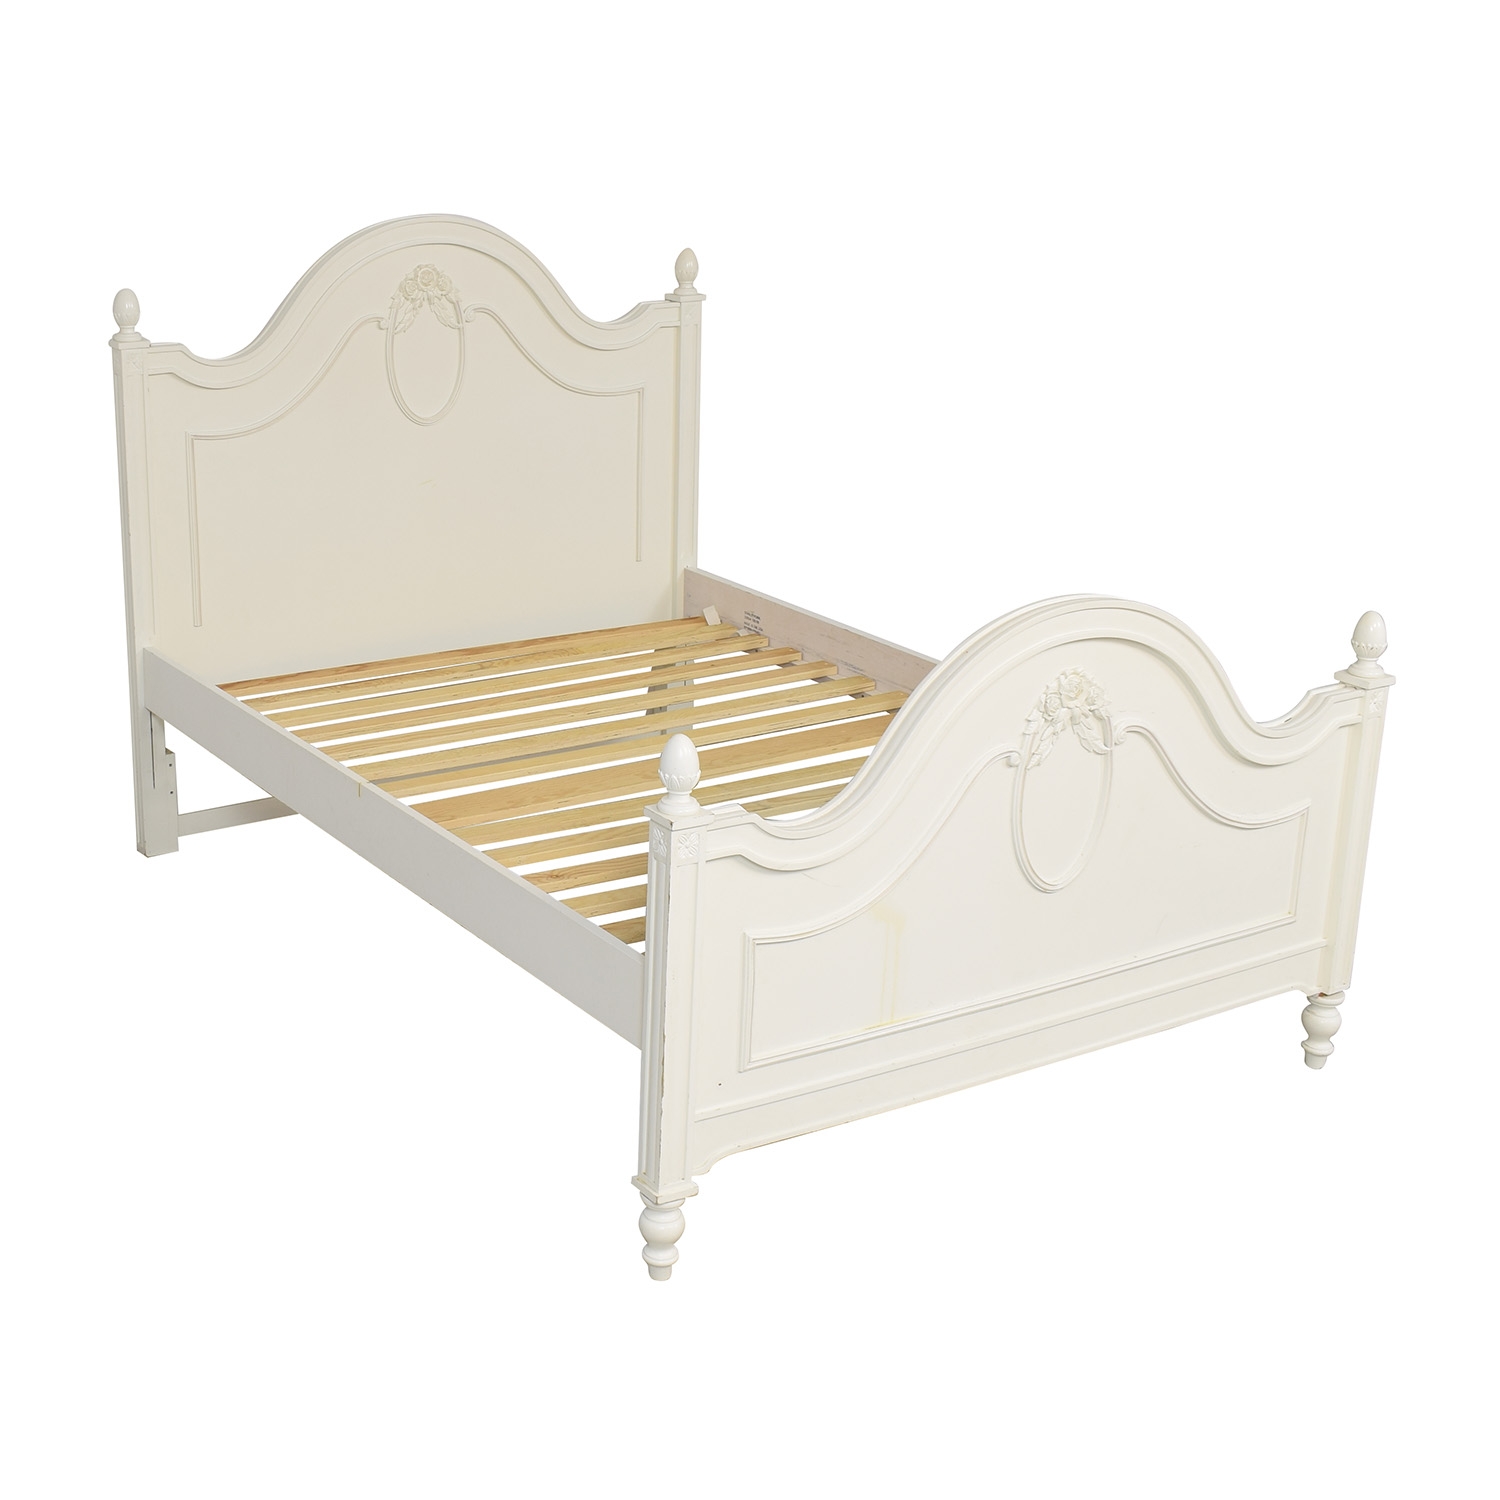 Stanley Furniture Stanley Furniture Young America Isabella Full Bed ma